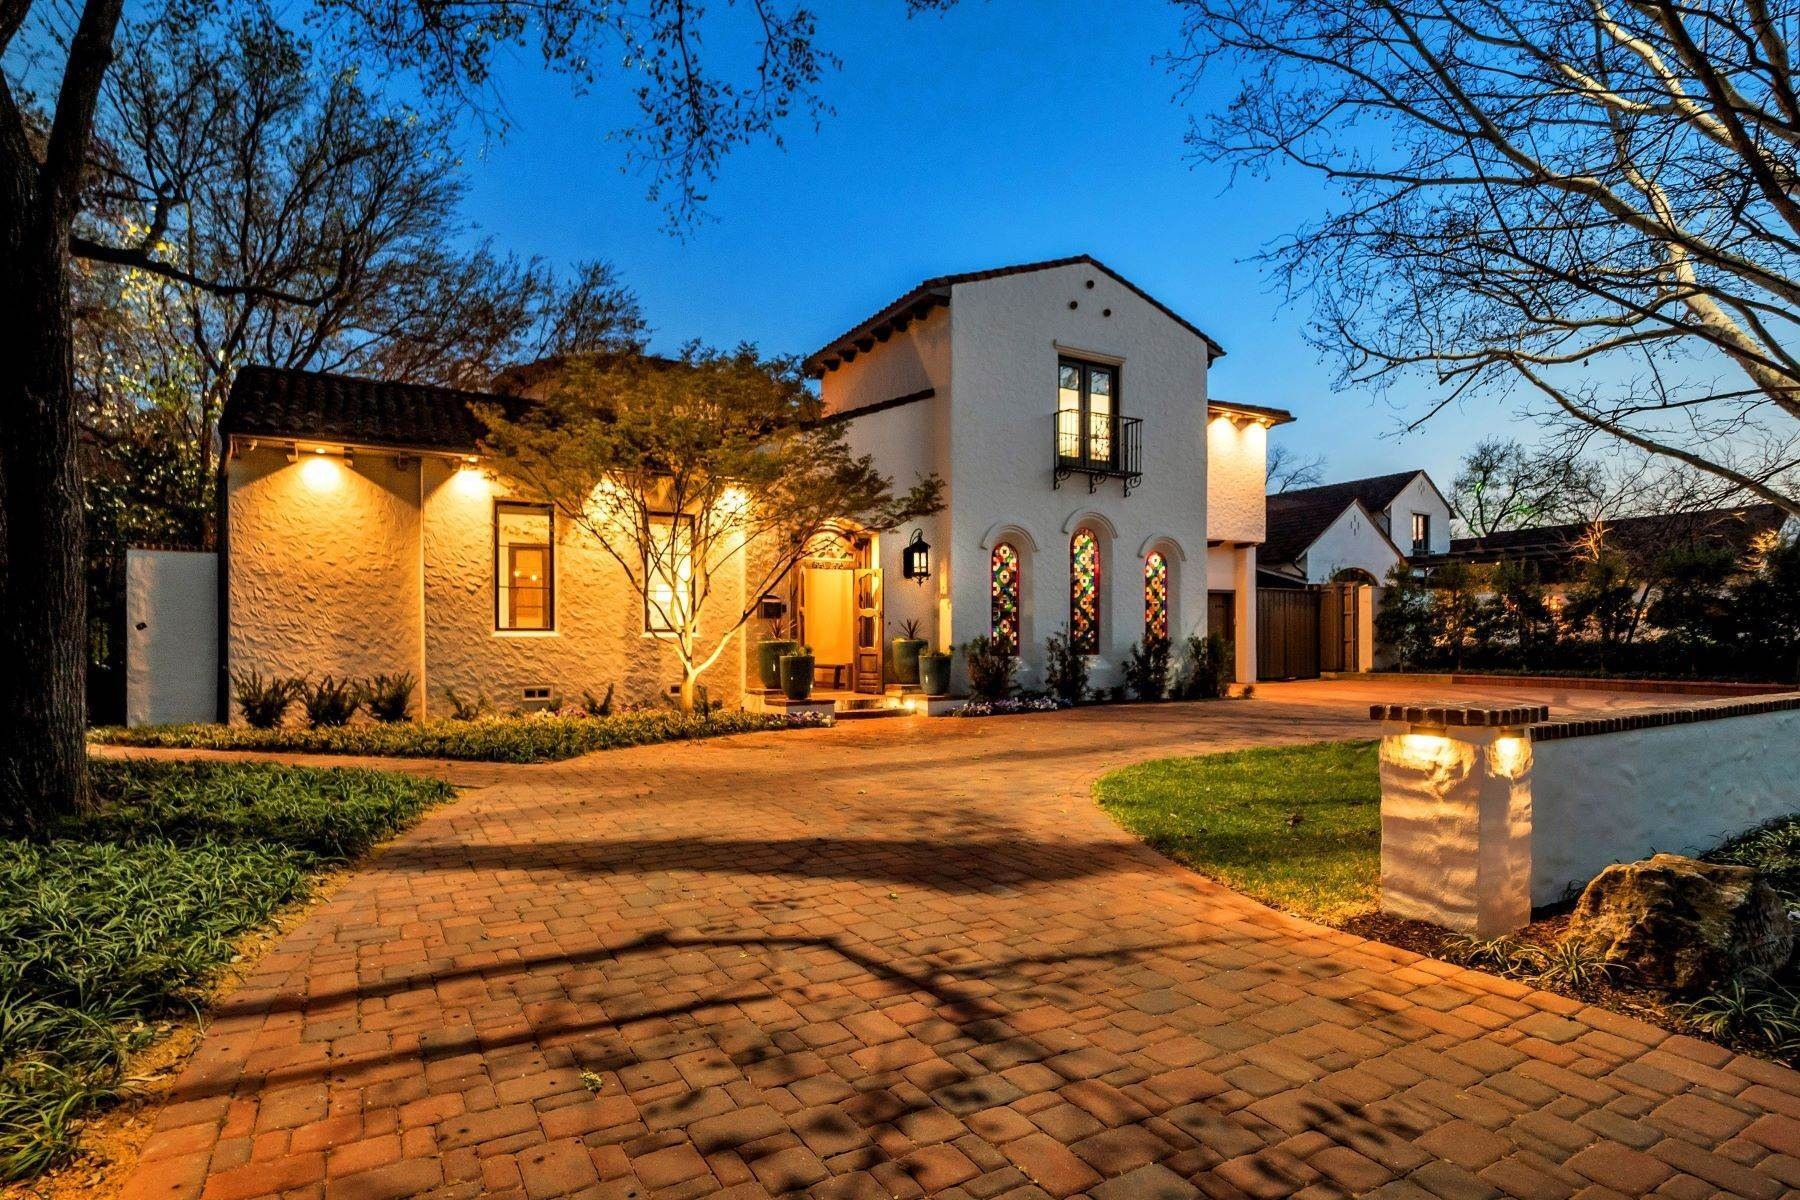 Single Family Homes for Sale at Stately Mediterranean in Bluffview 4618 Cherokee Trail Dallas, Texas 75209 United States